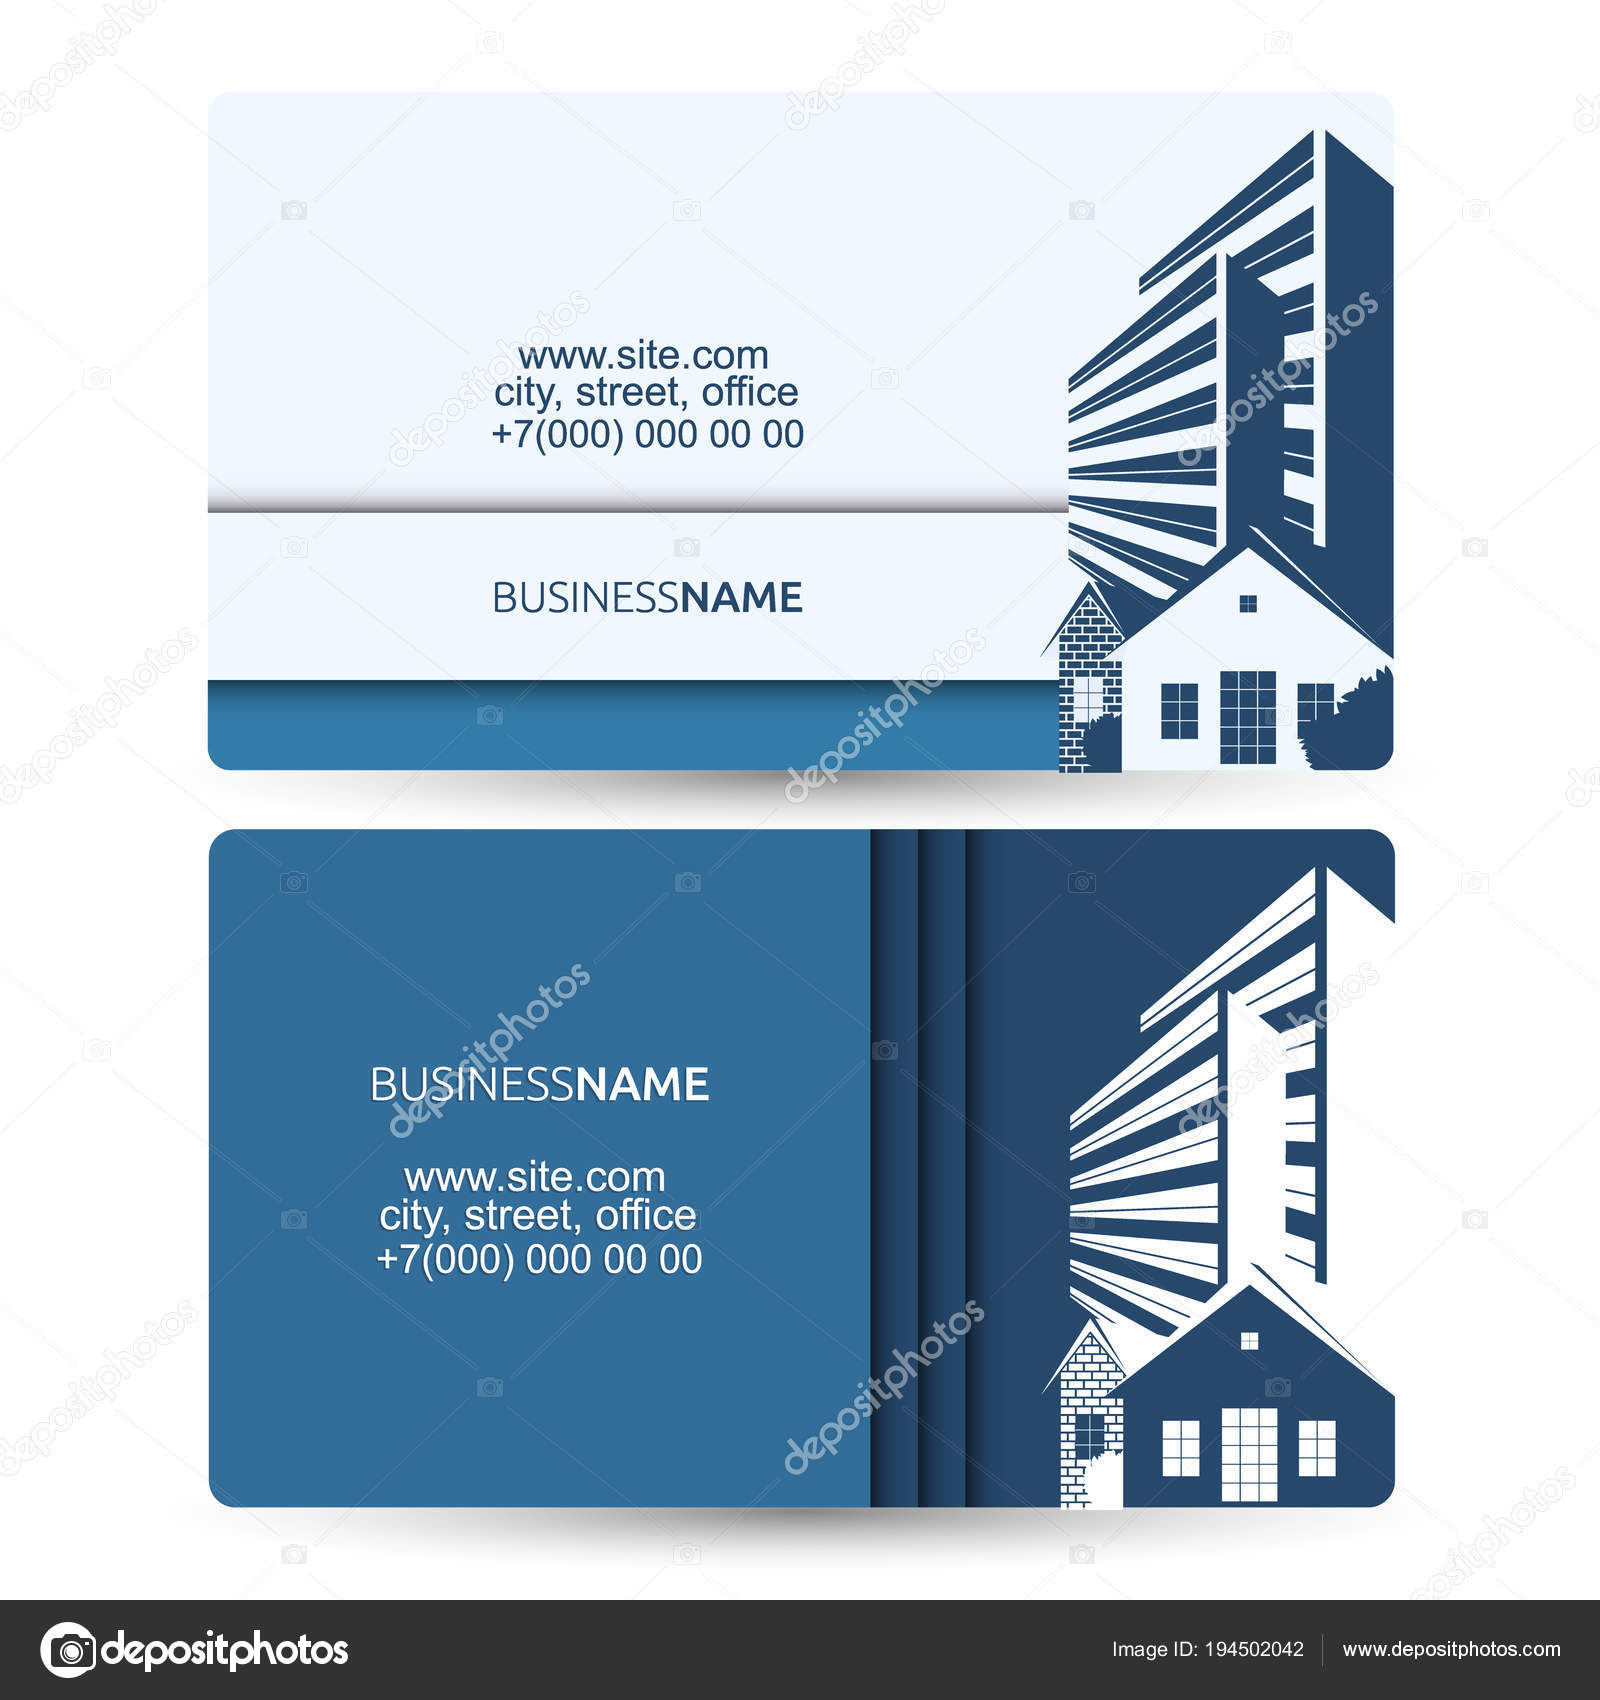 business card sale of houses and building stock vector john1279